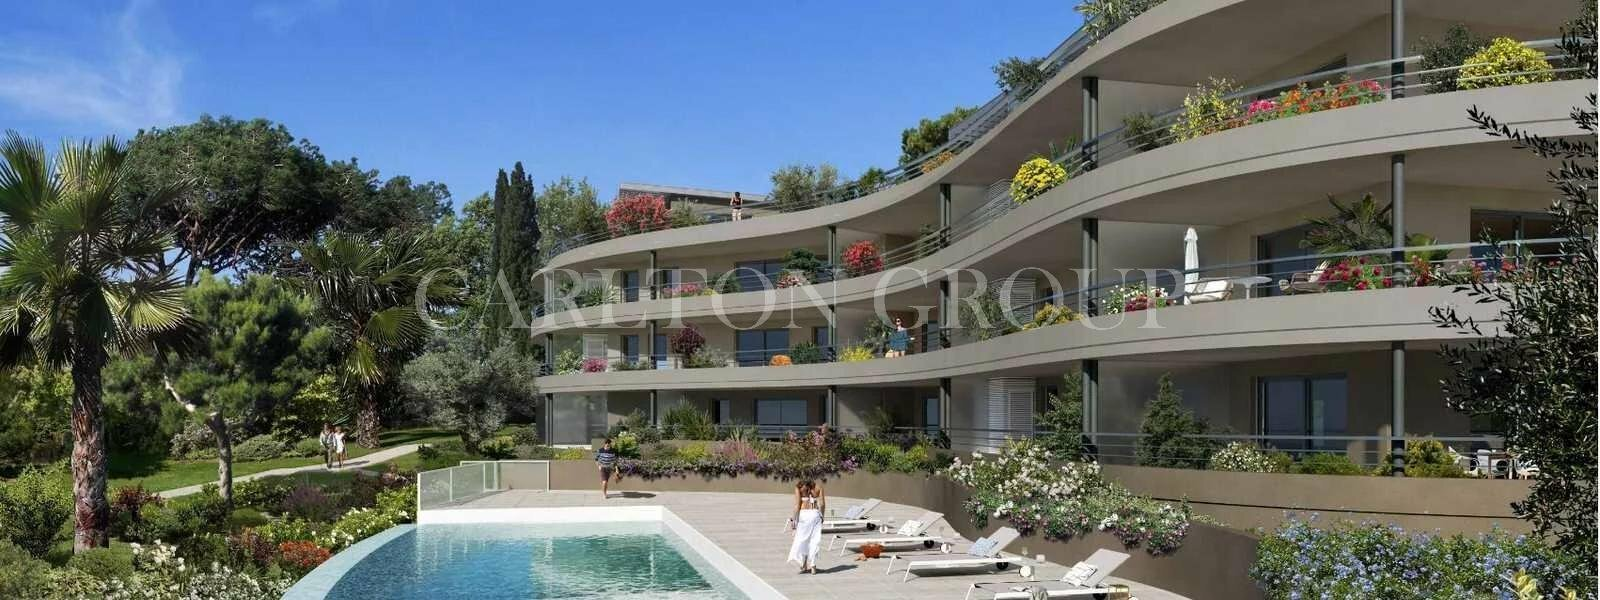 Apartment in Nice, Provence-Alpes-Côte d'Azur, France 1 - 11555338